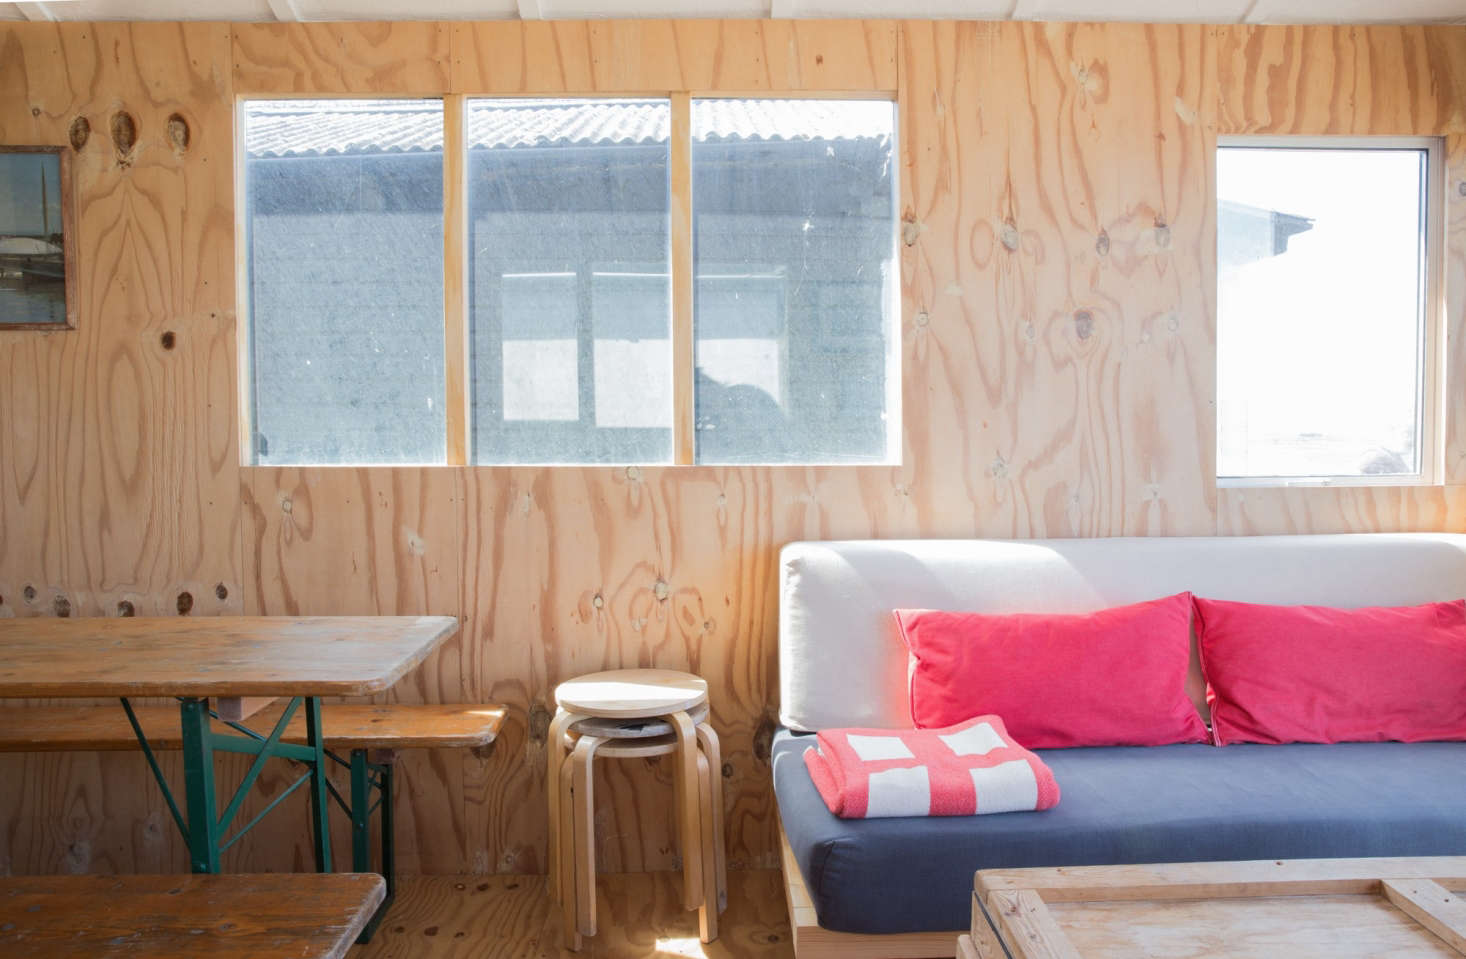 The sofa, which serves as an extra bed, is a homemade wooden platform—&#8